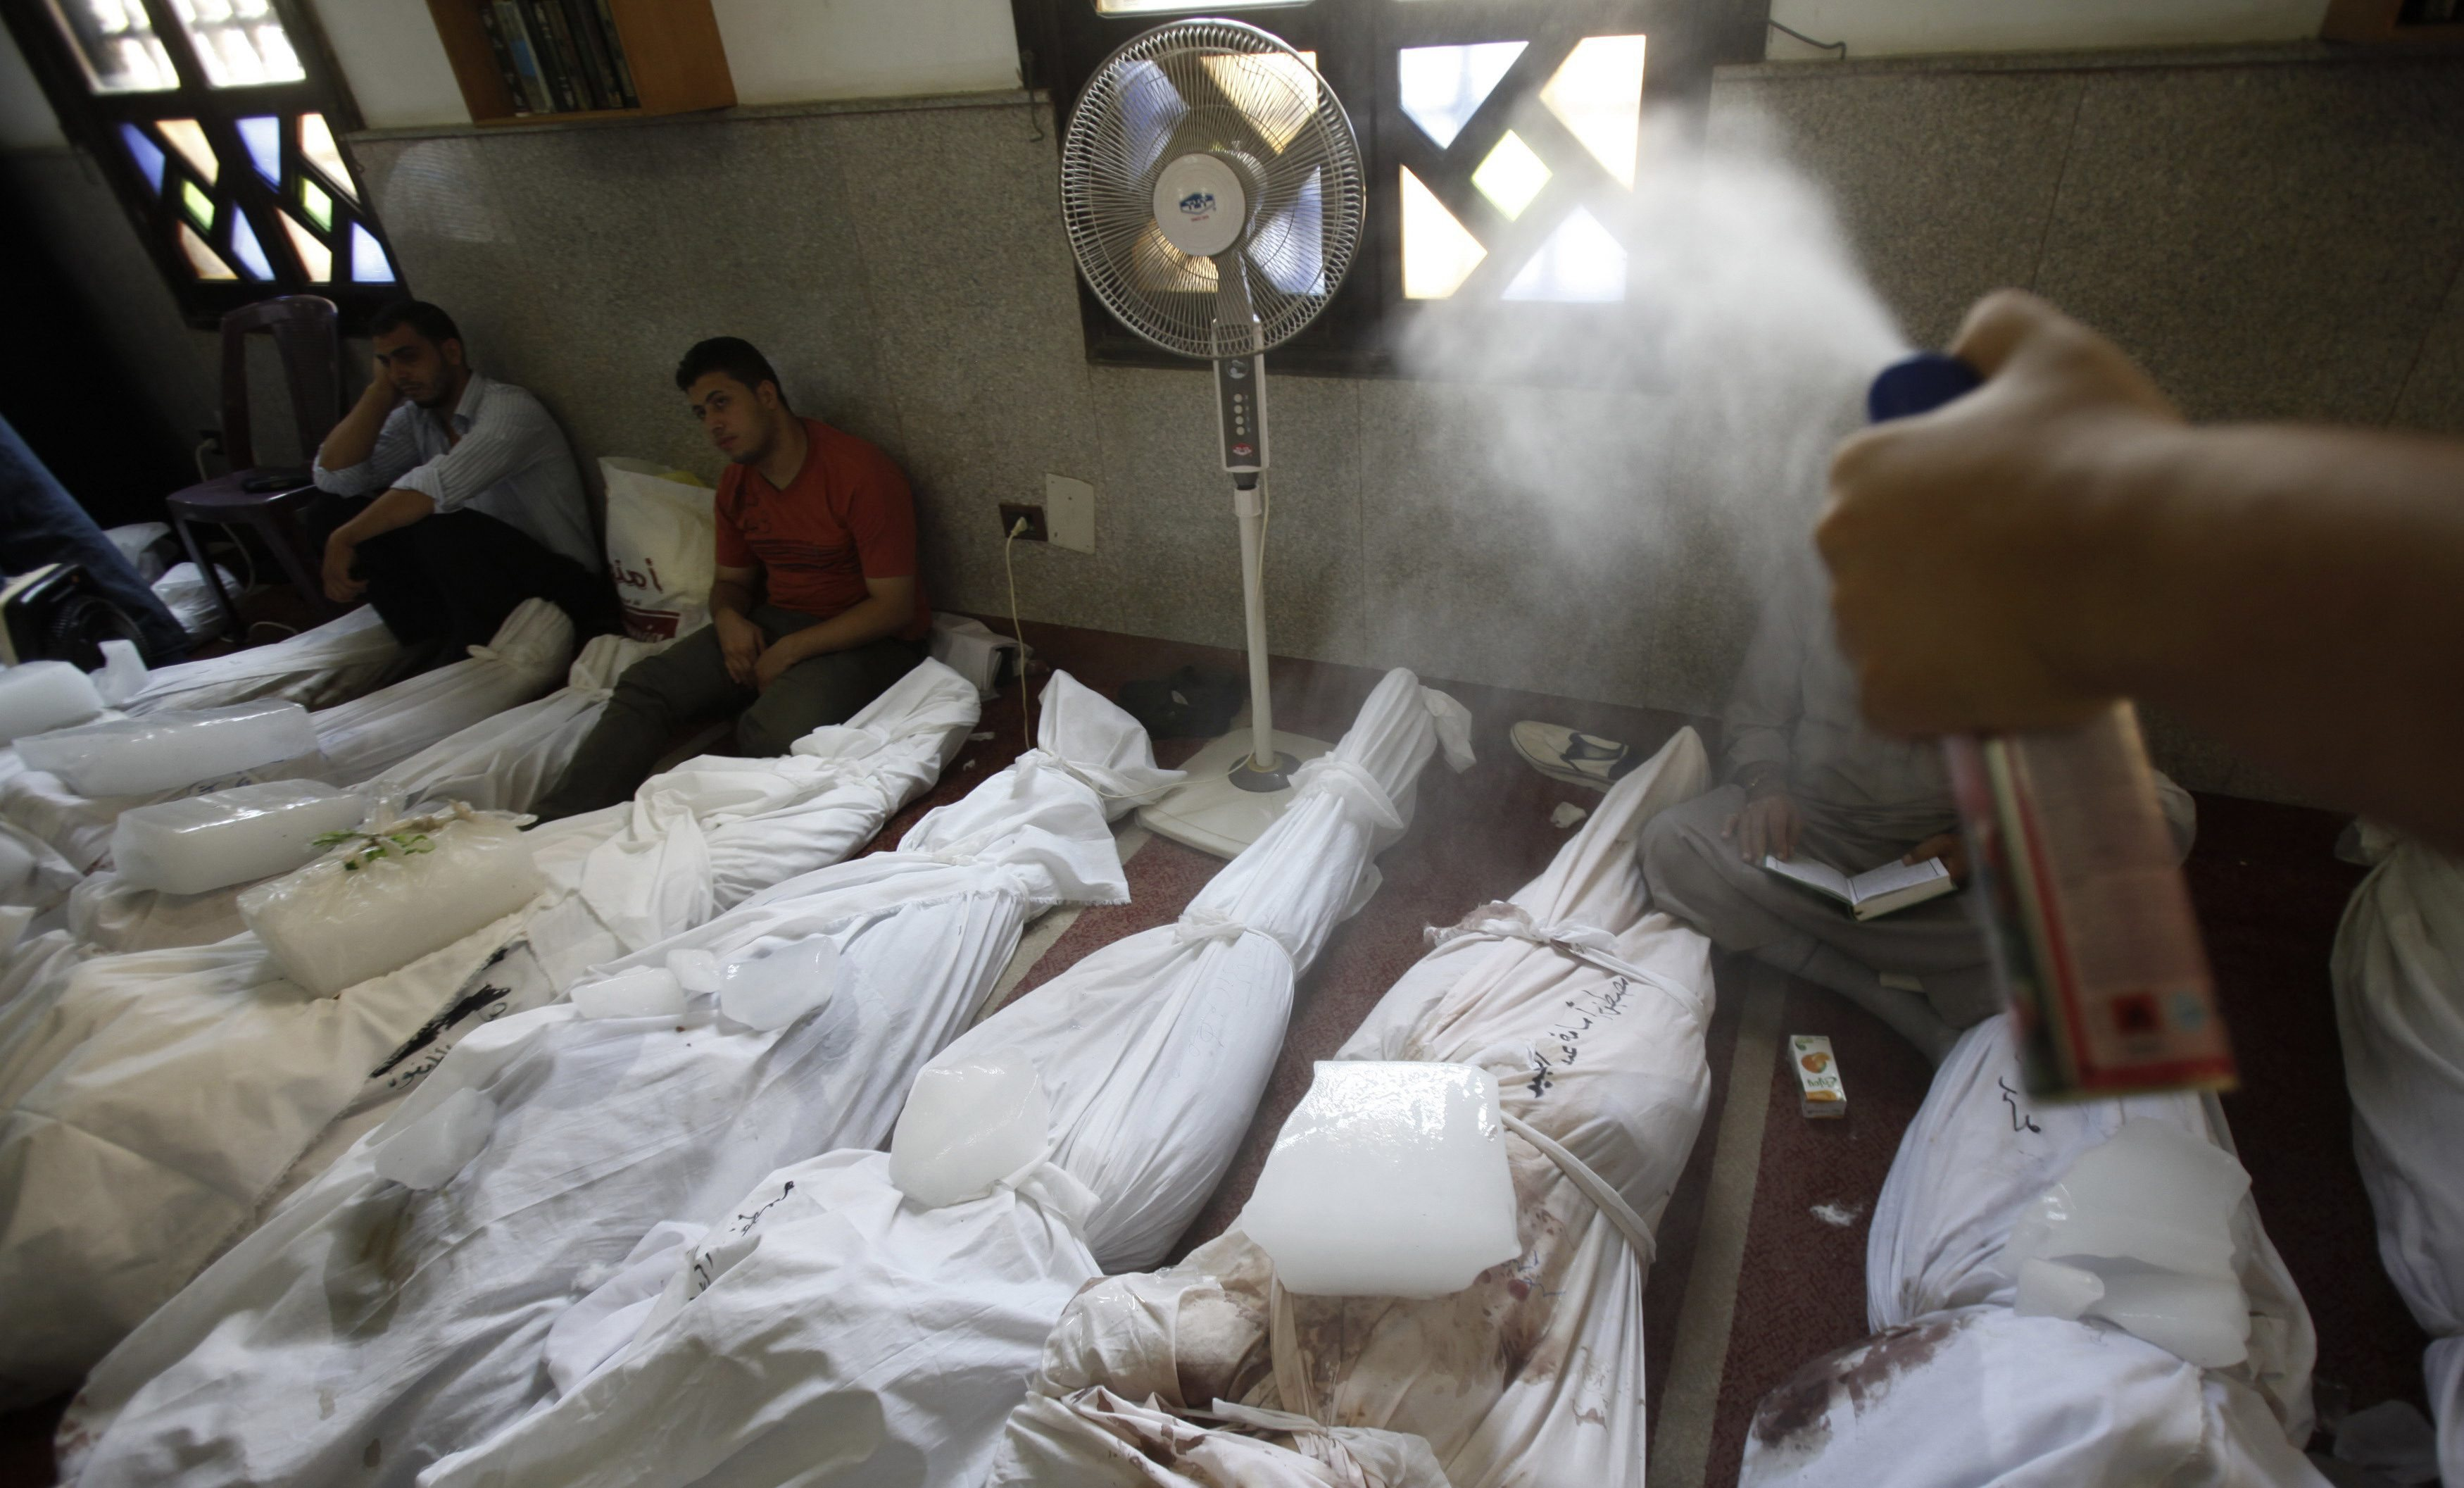 Egypt: After the 'massacre' | US & Canada | Al Jazeera